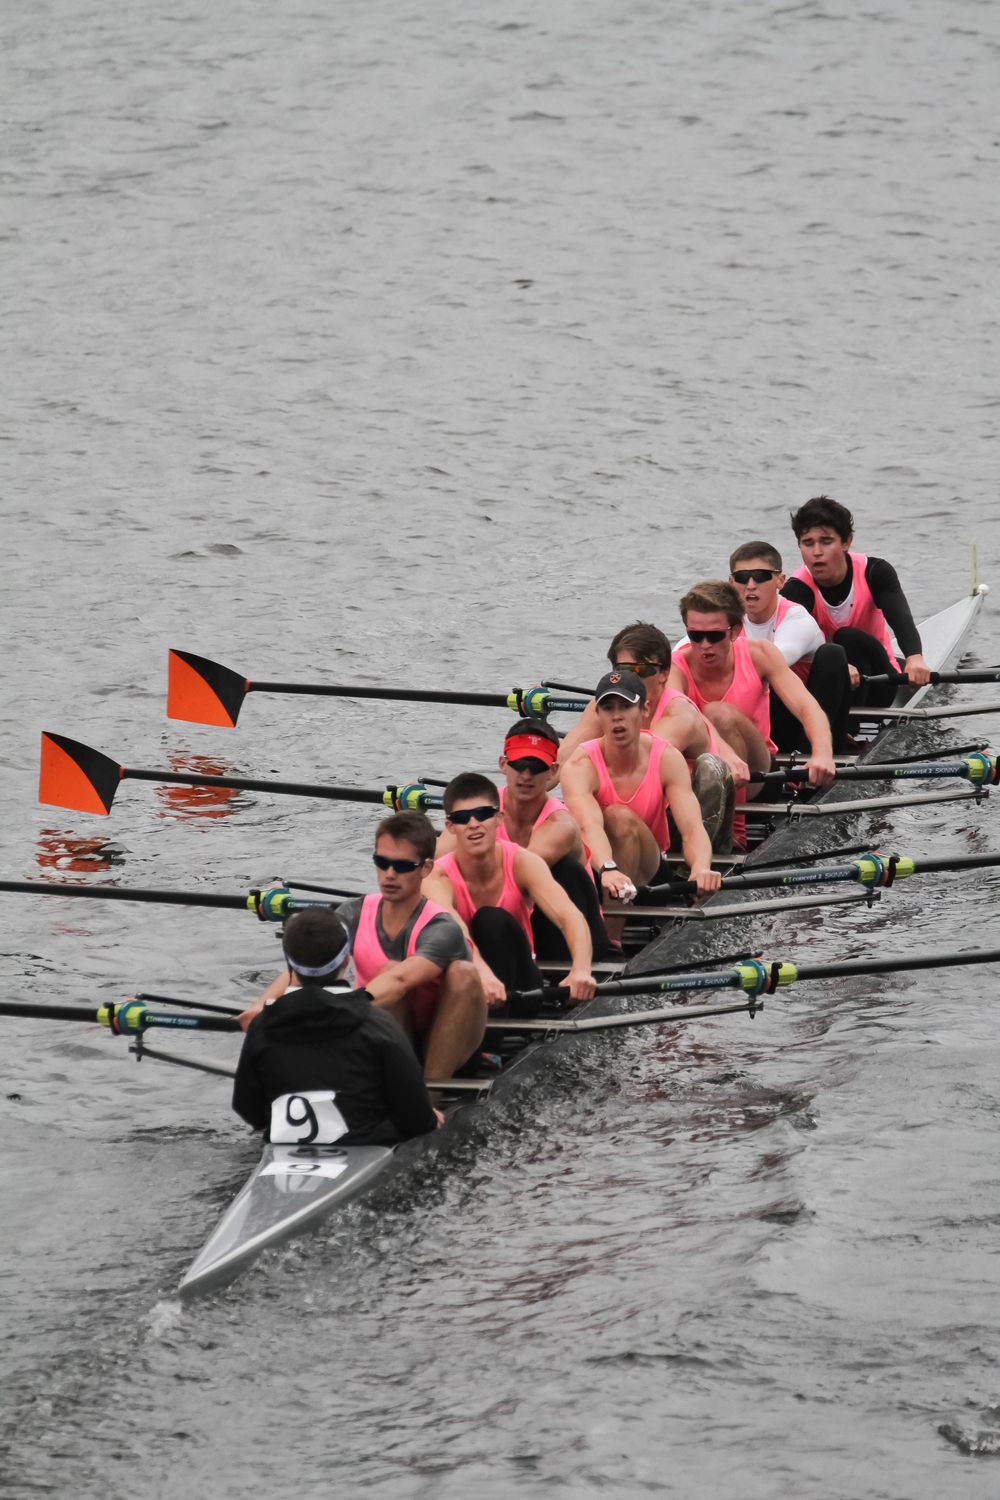 The lightweight men's 2v placed 9th overall